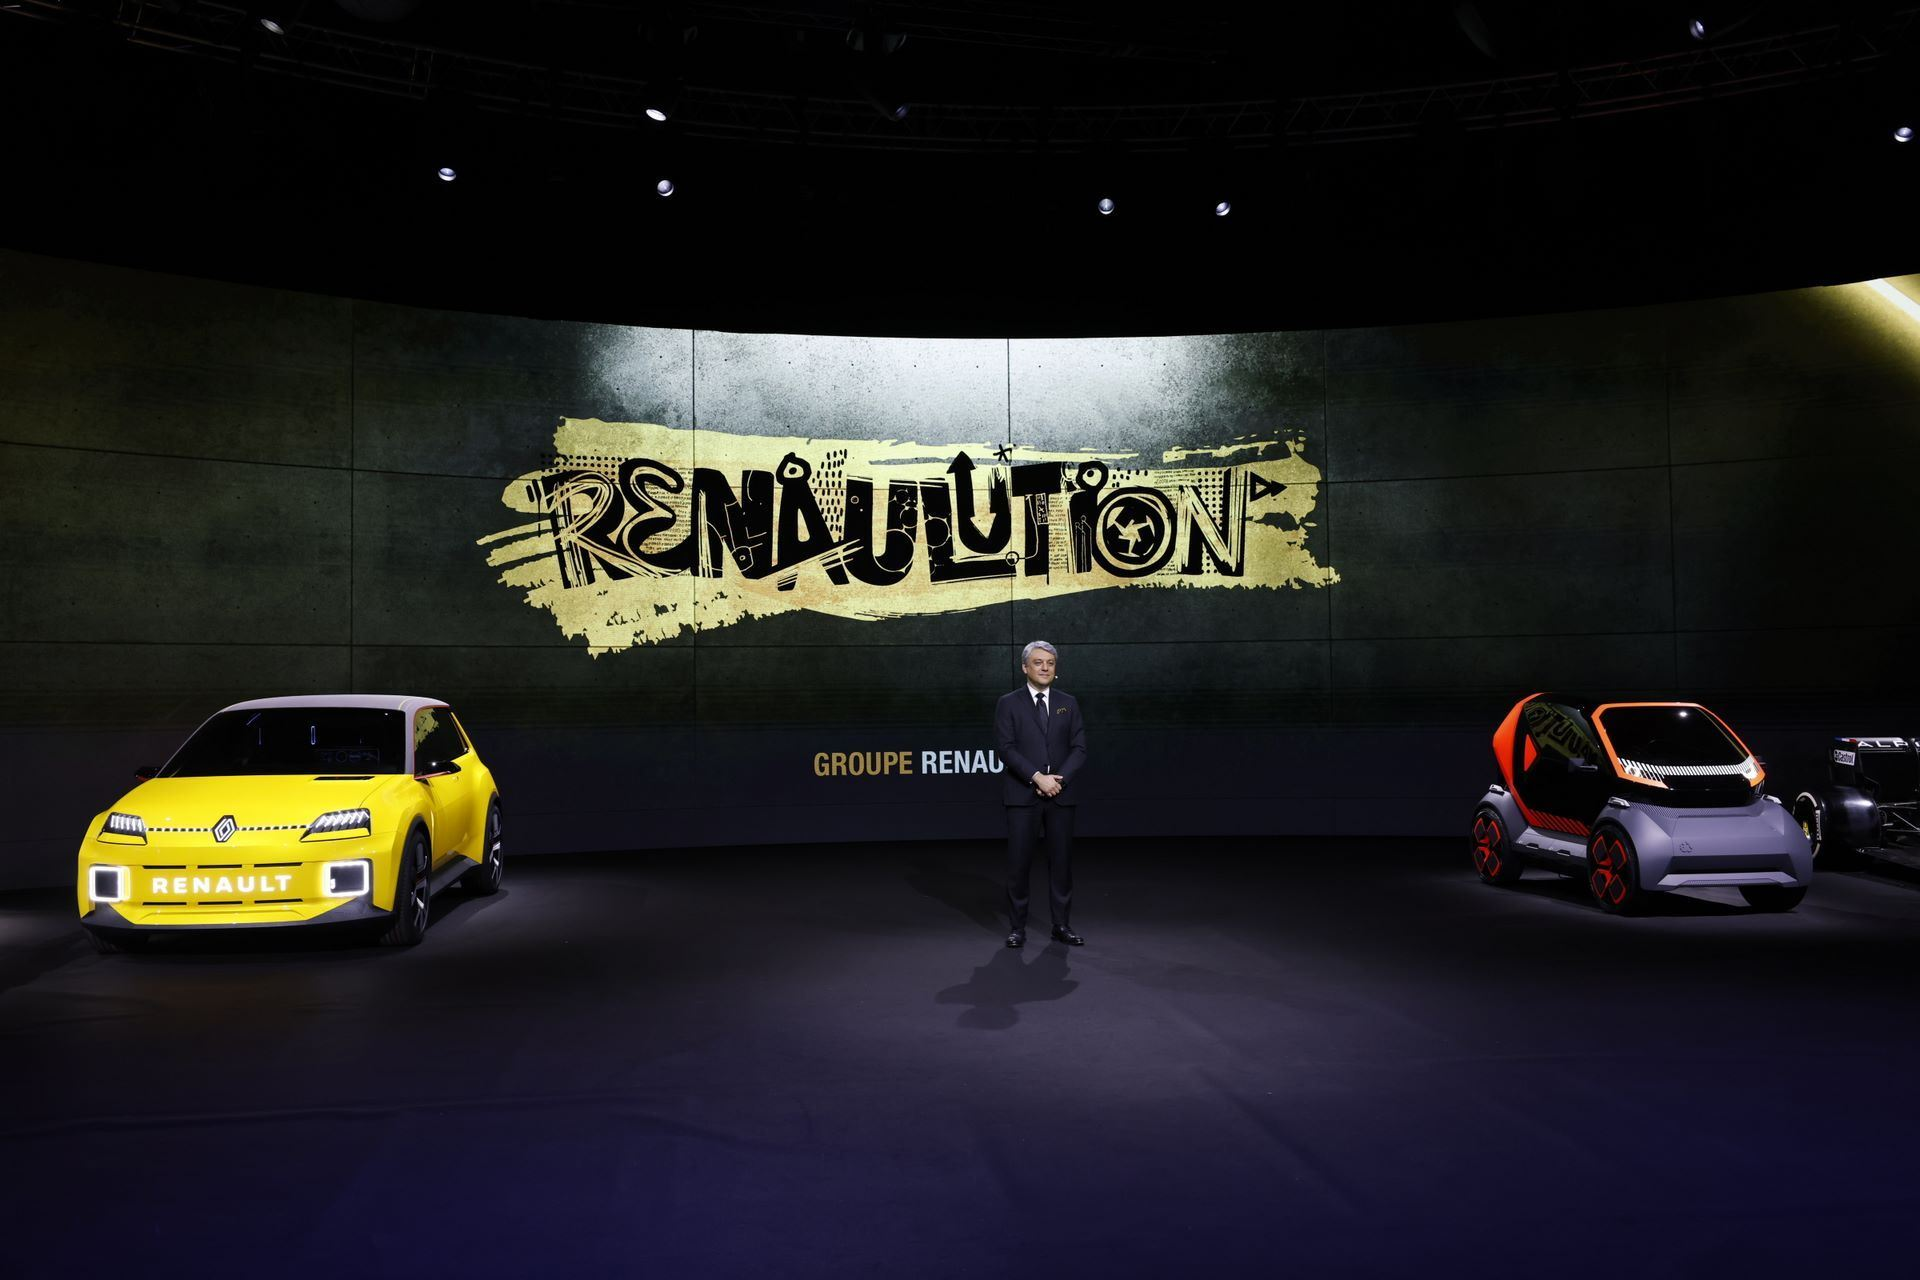 8-Reveal-of-the-Groupe-Renault-strategic-plan-on-January-14th-2021